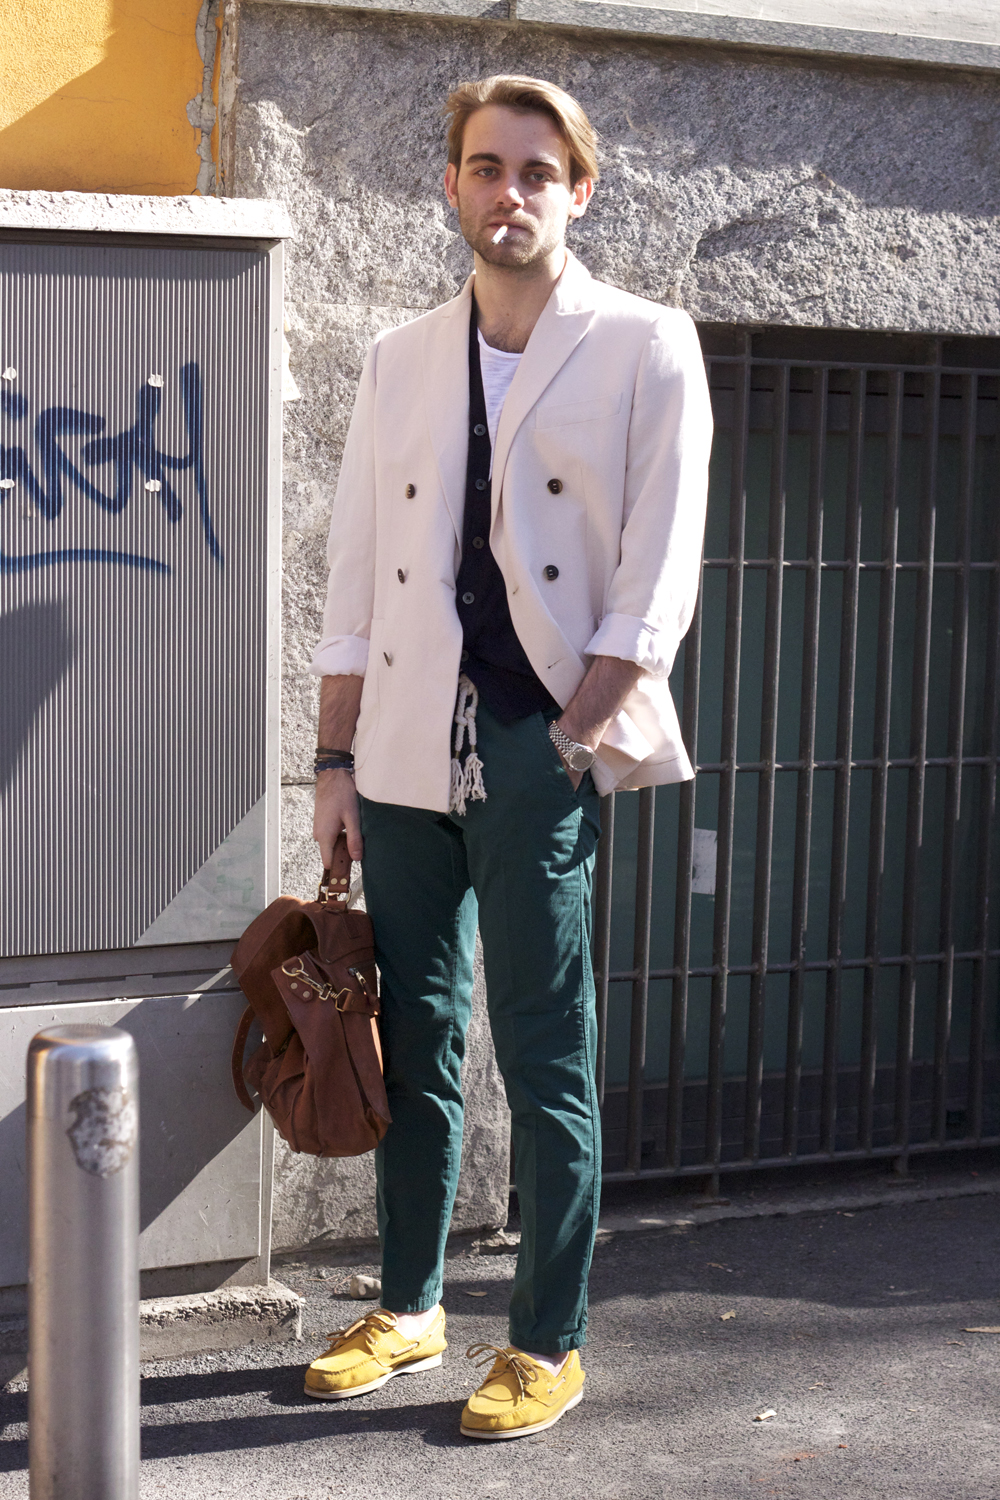 WHite jacket, yellow boat shoes |